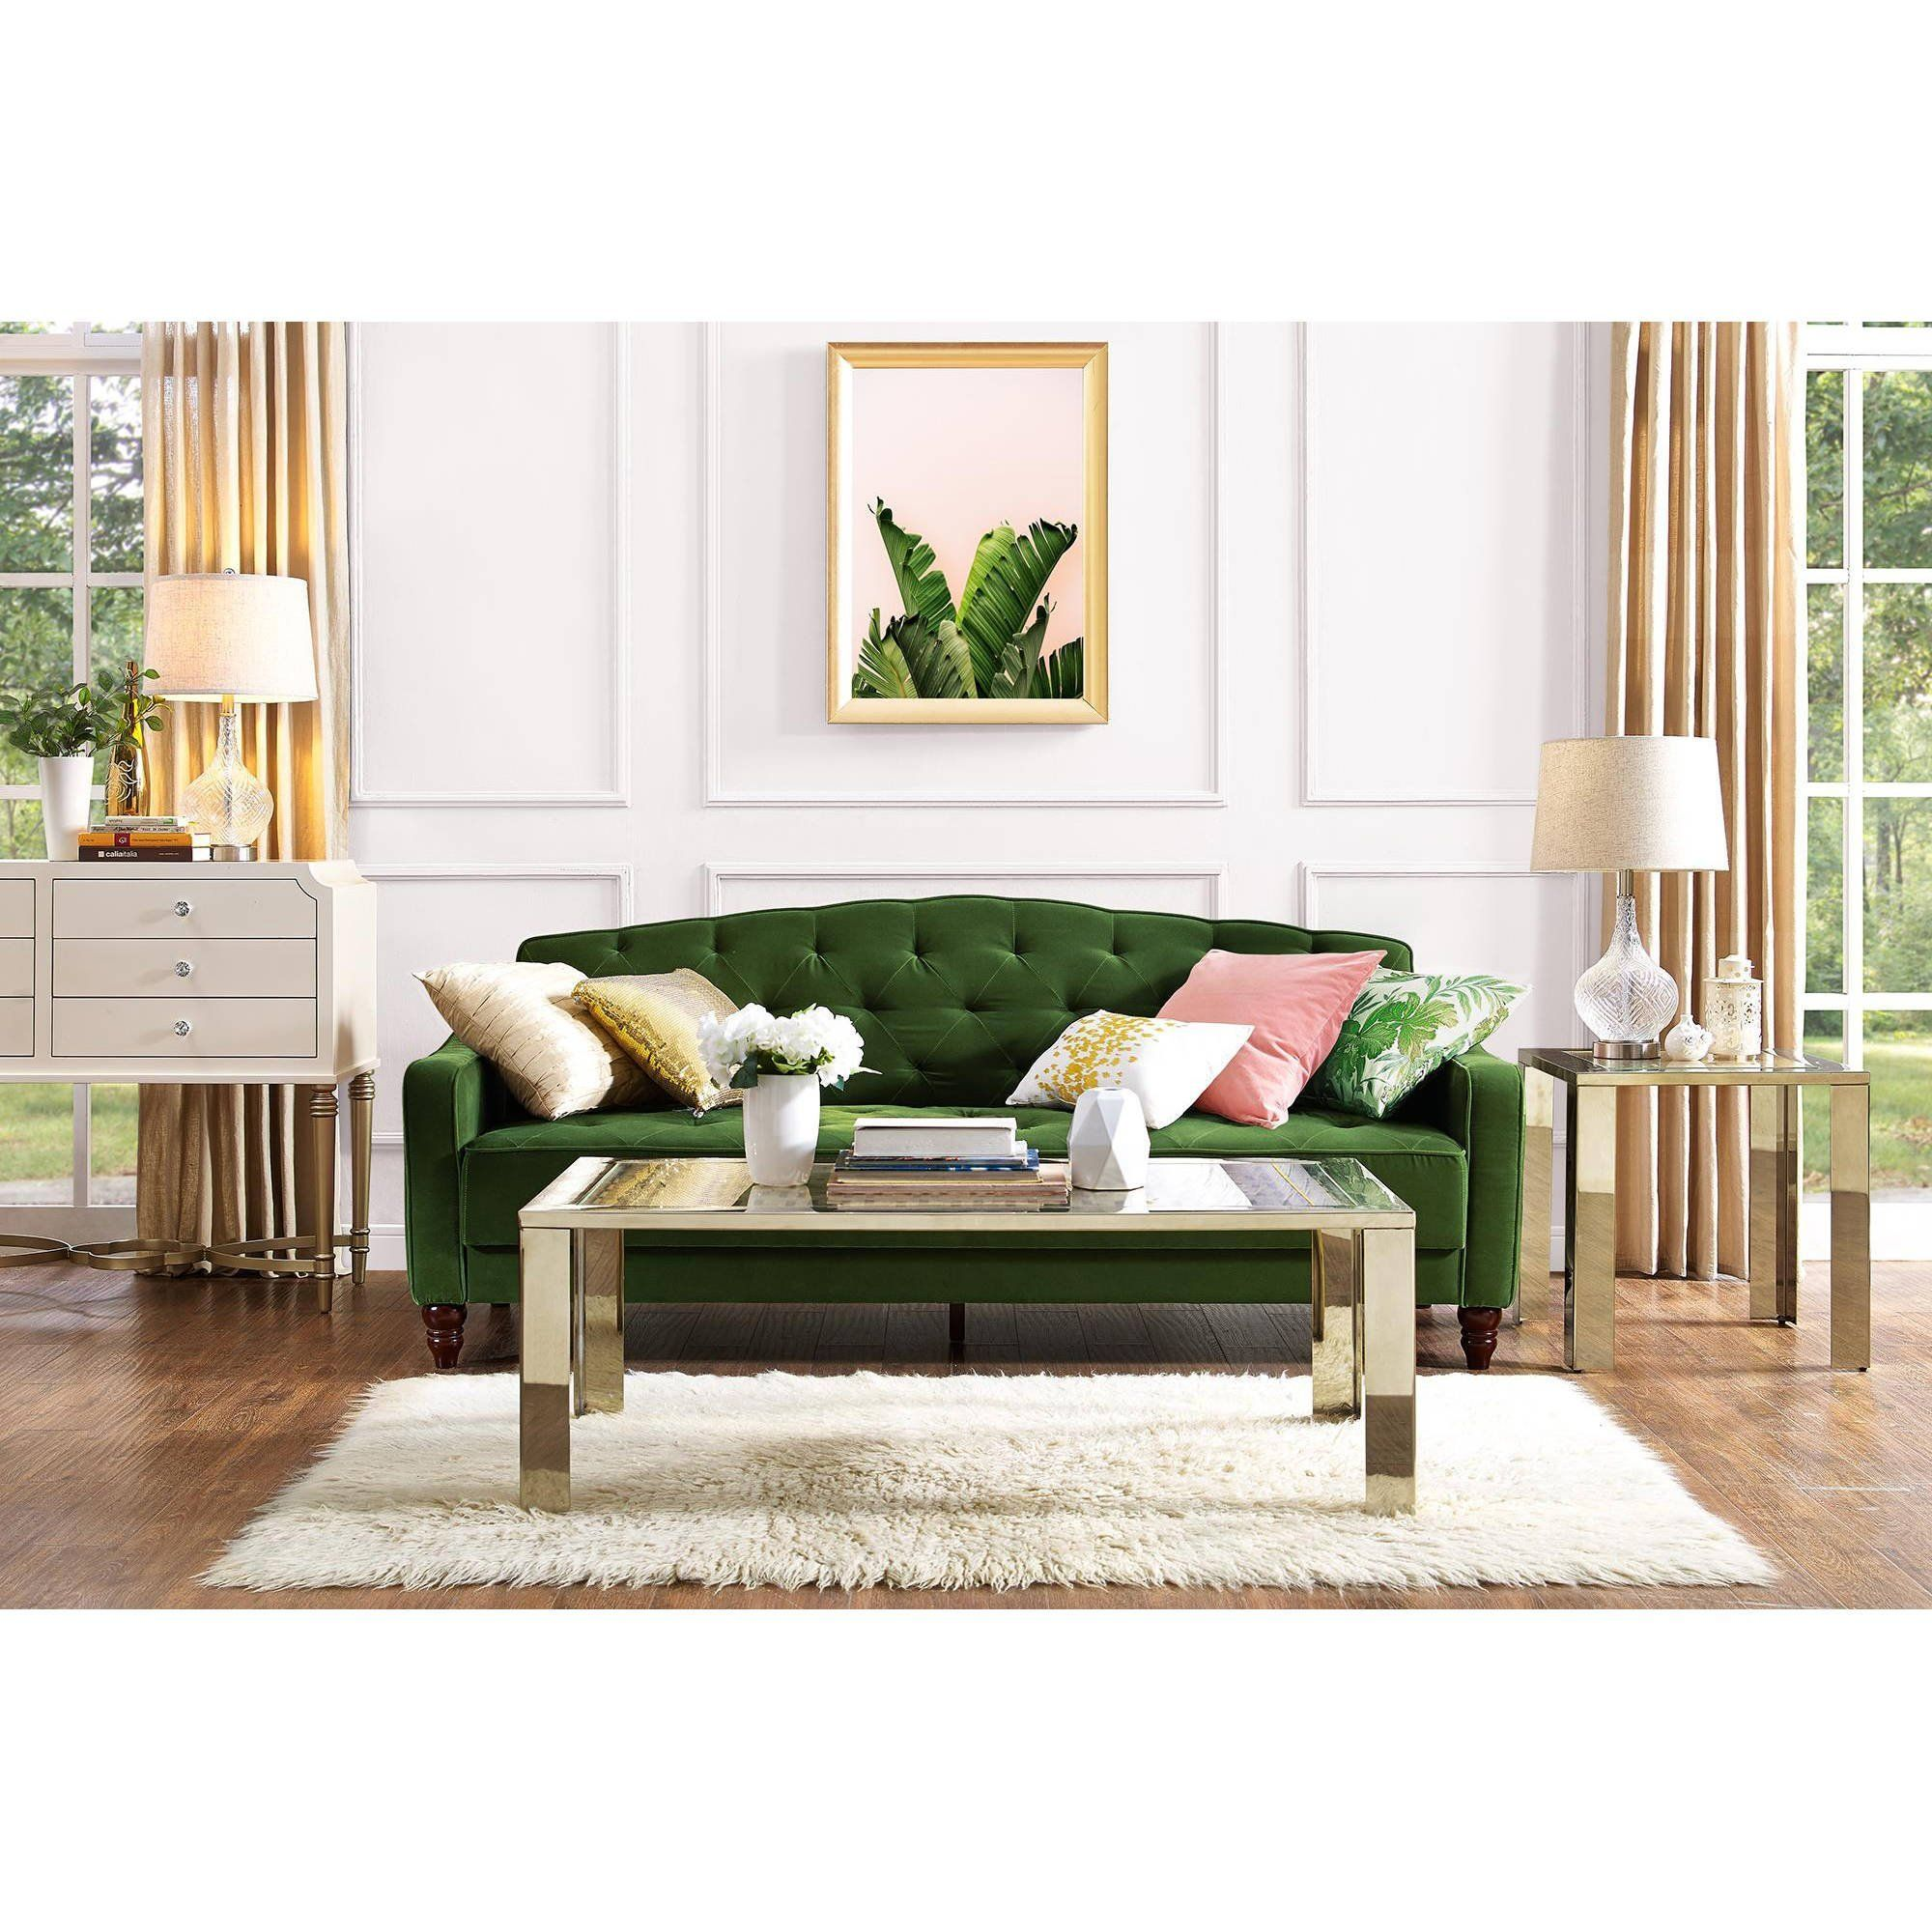 Grüne Schlafsofas Elegant 3 Easy To Convert Positions Vintage Tufted Sofa Sleeper Ii